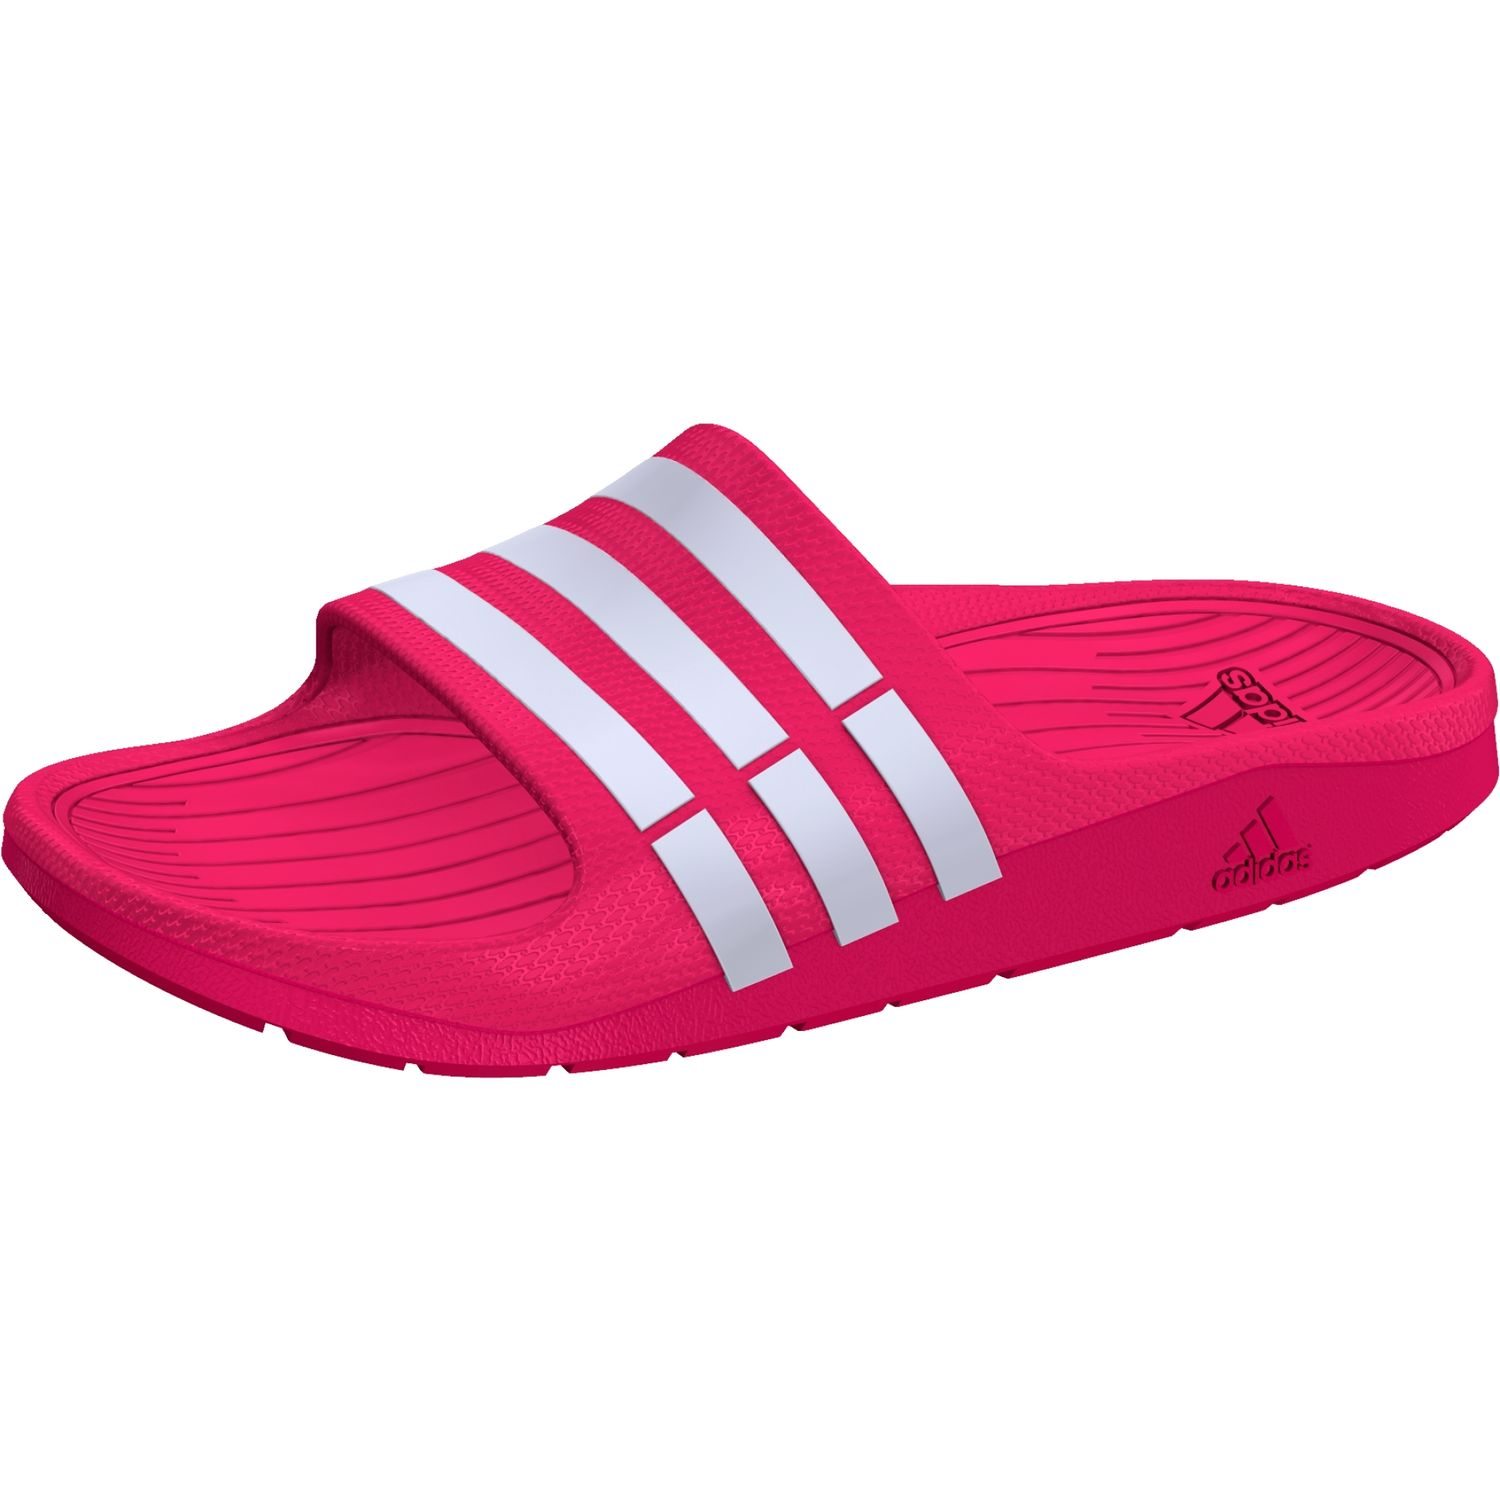 adidas adilette duramo slide k pink weiss g06797 schuhe. Black Bedroom Furniture Sets. Home Design Ideas